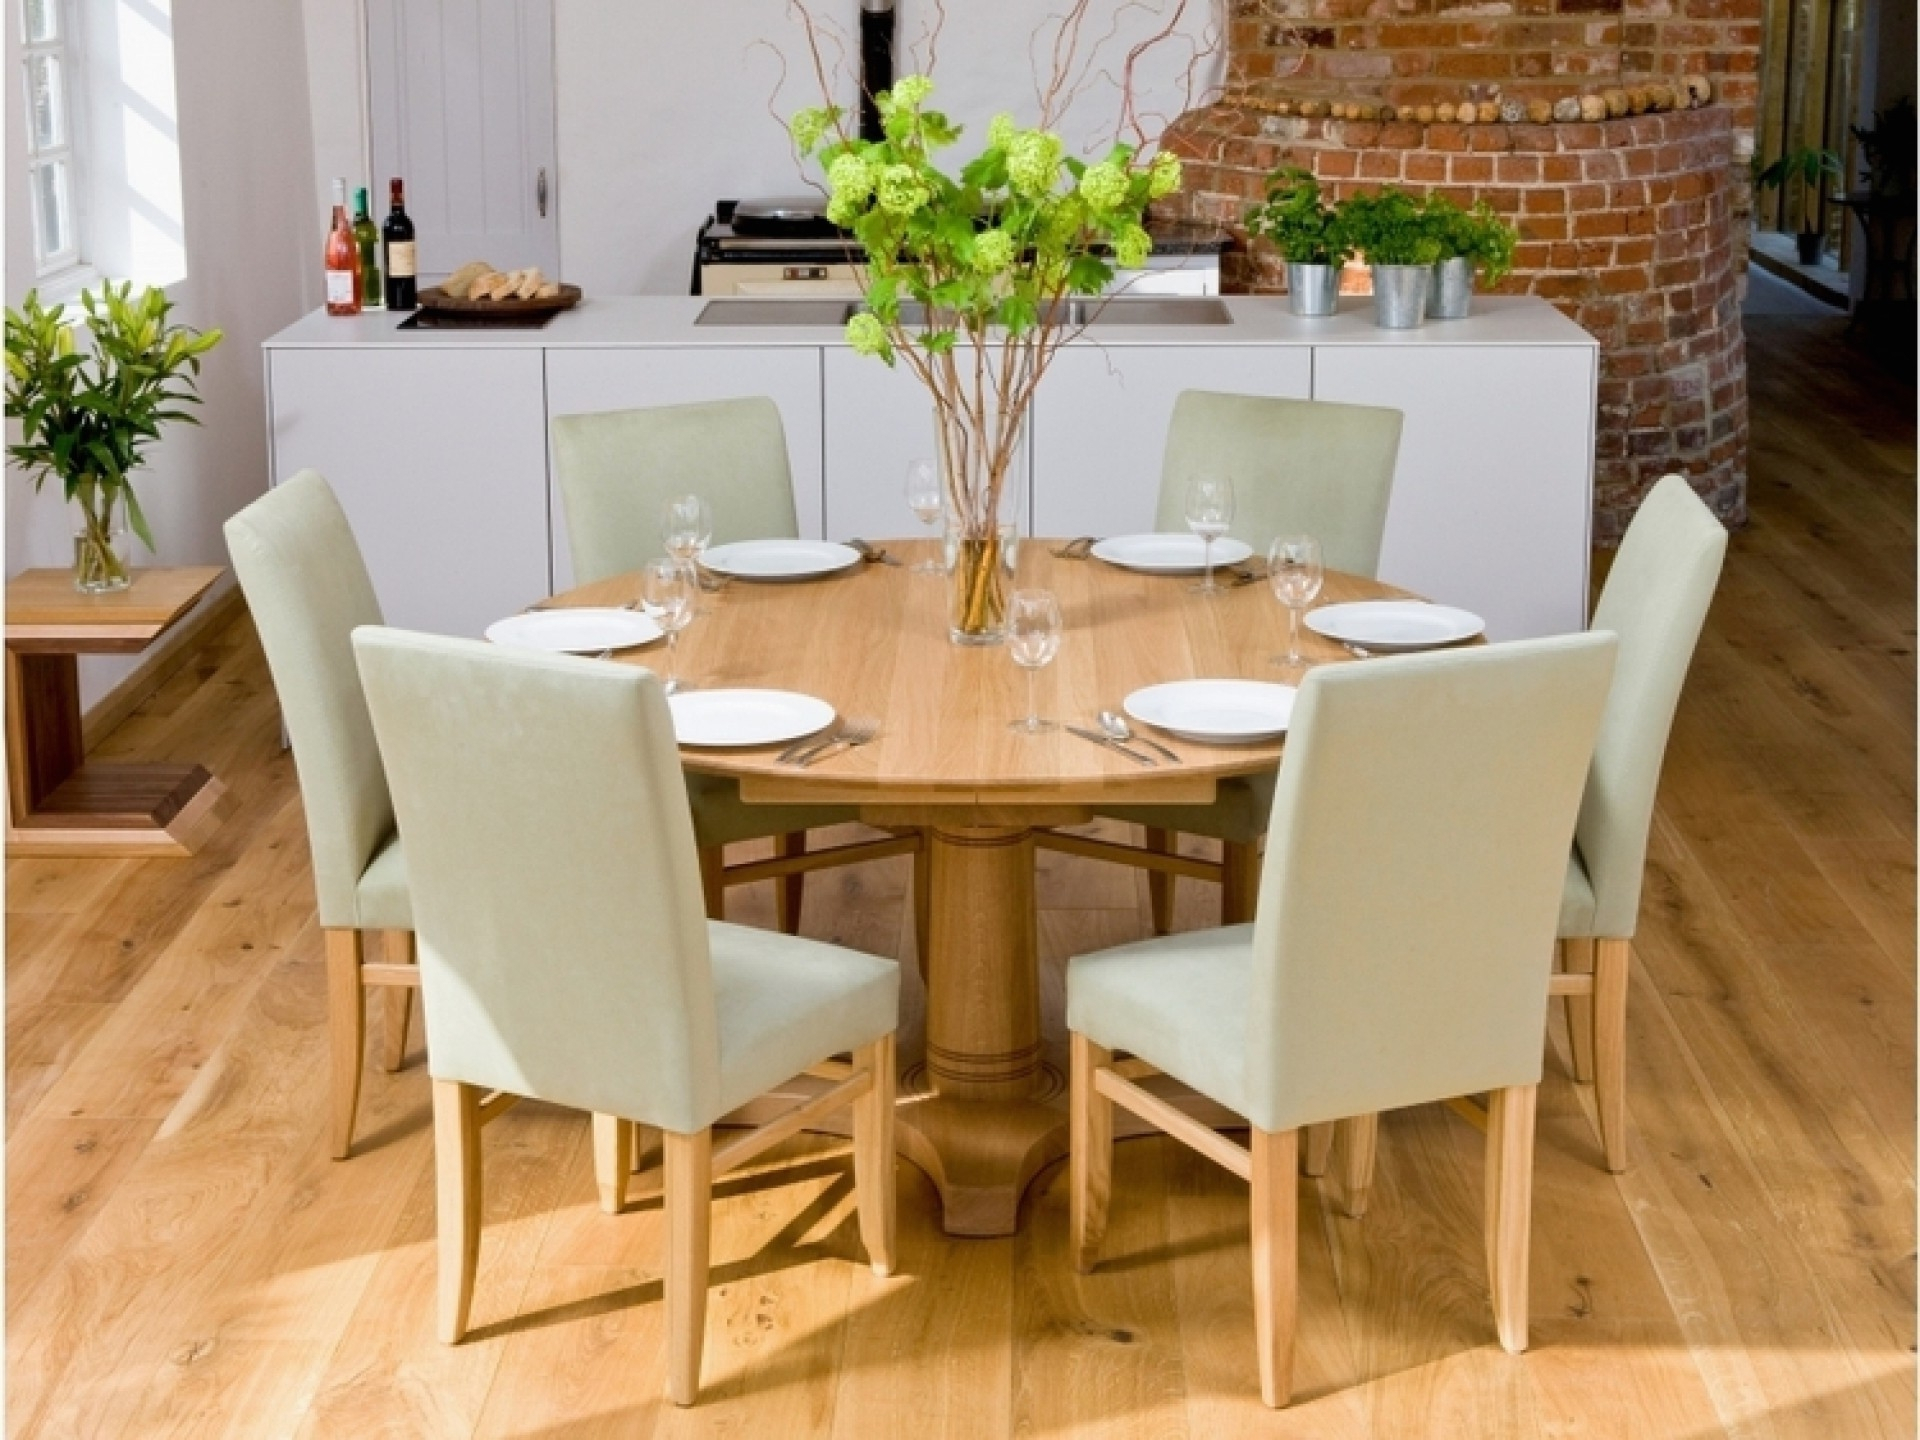 6 Seat Round Dining Tables Within Famous Round Dining Room Table Sets For 6 Valid 6 Seat Round Dining Table (View 8 of 25)